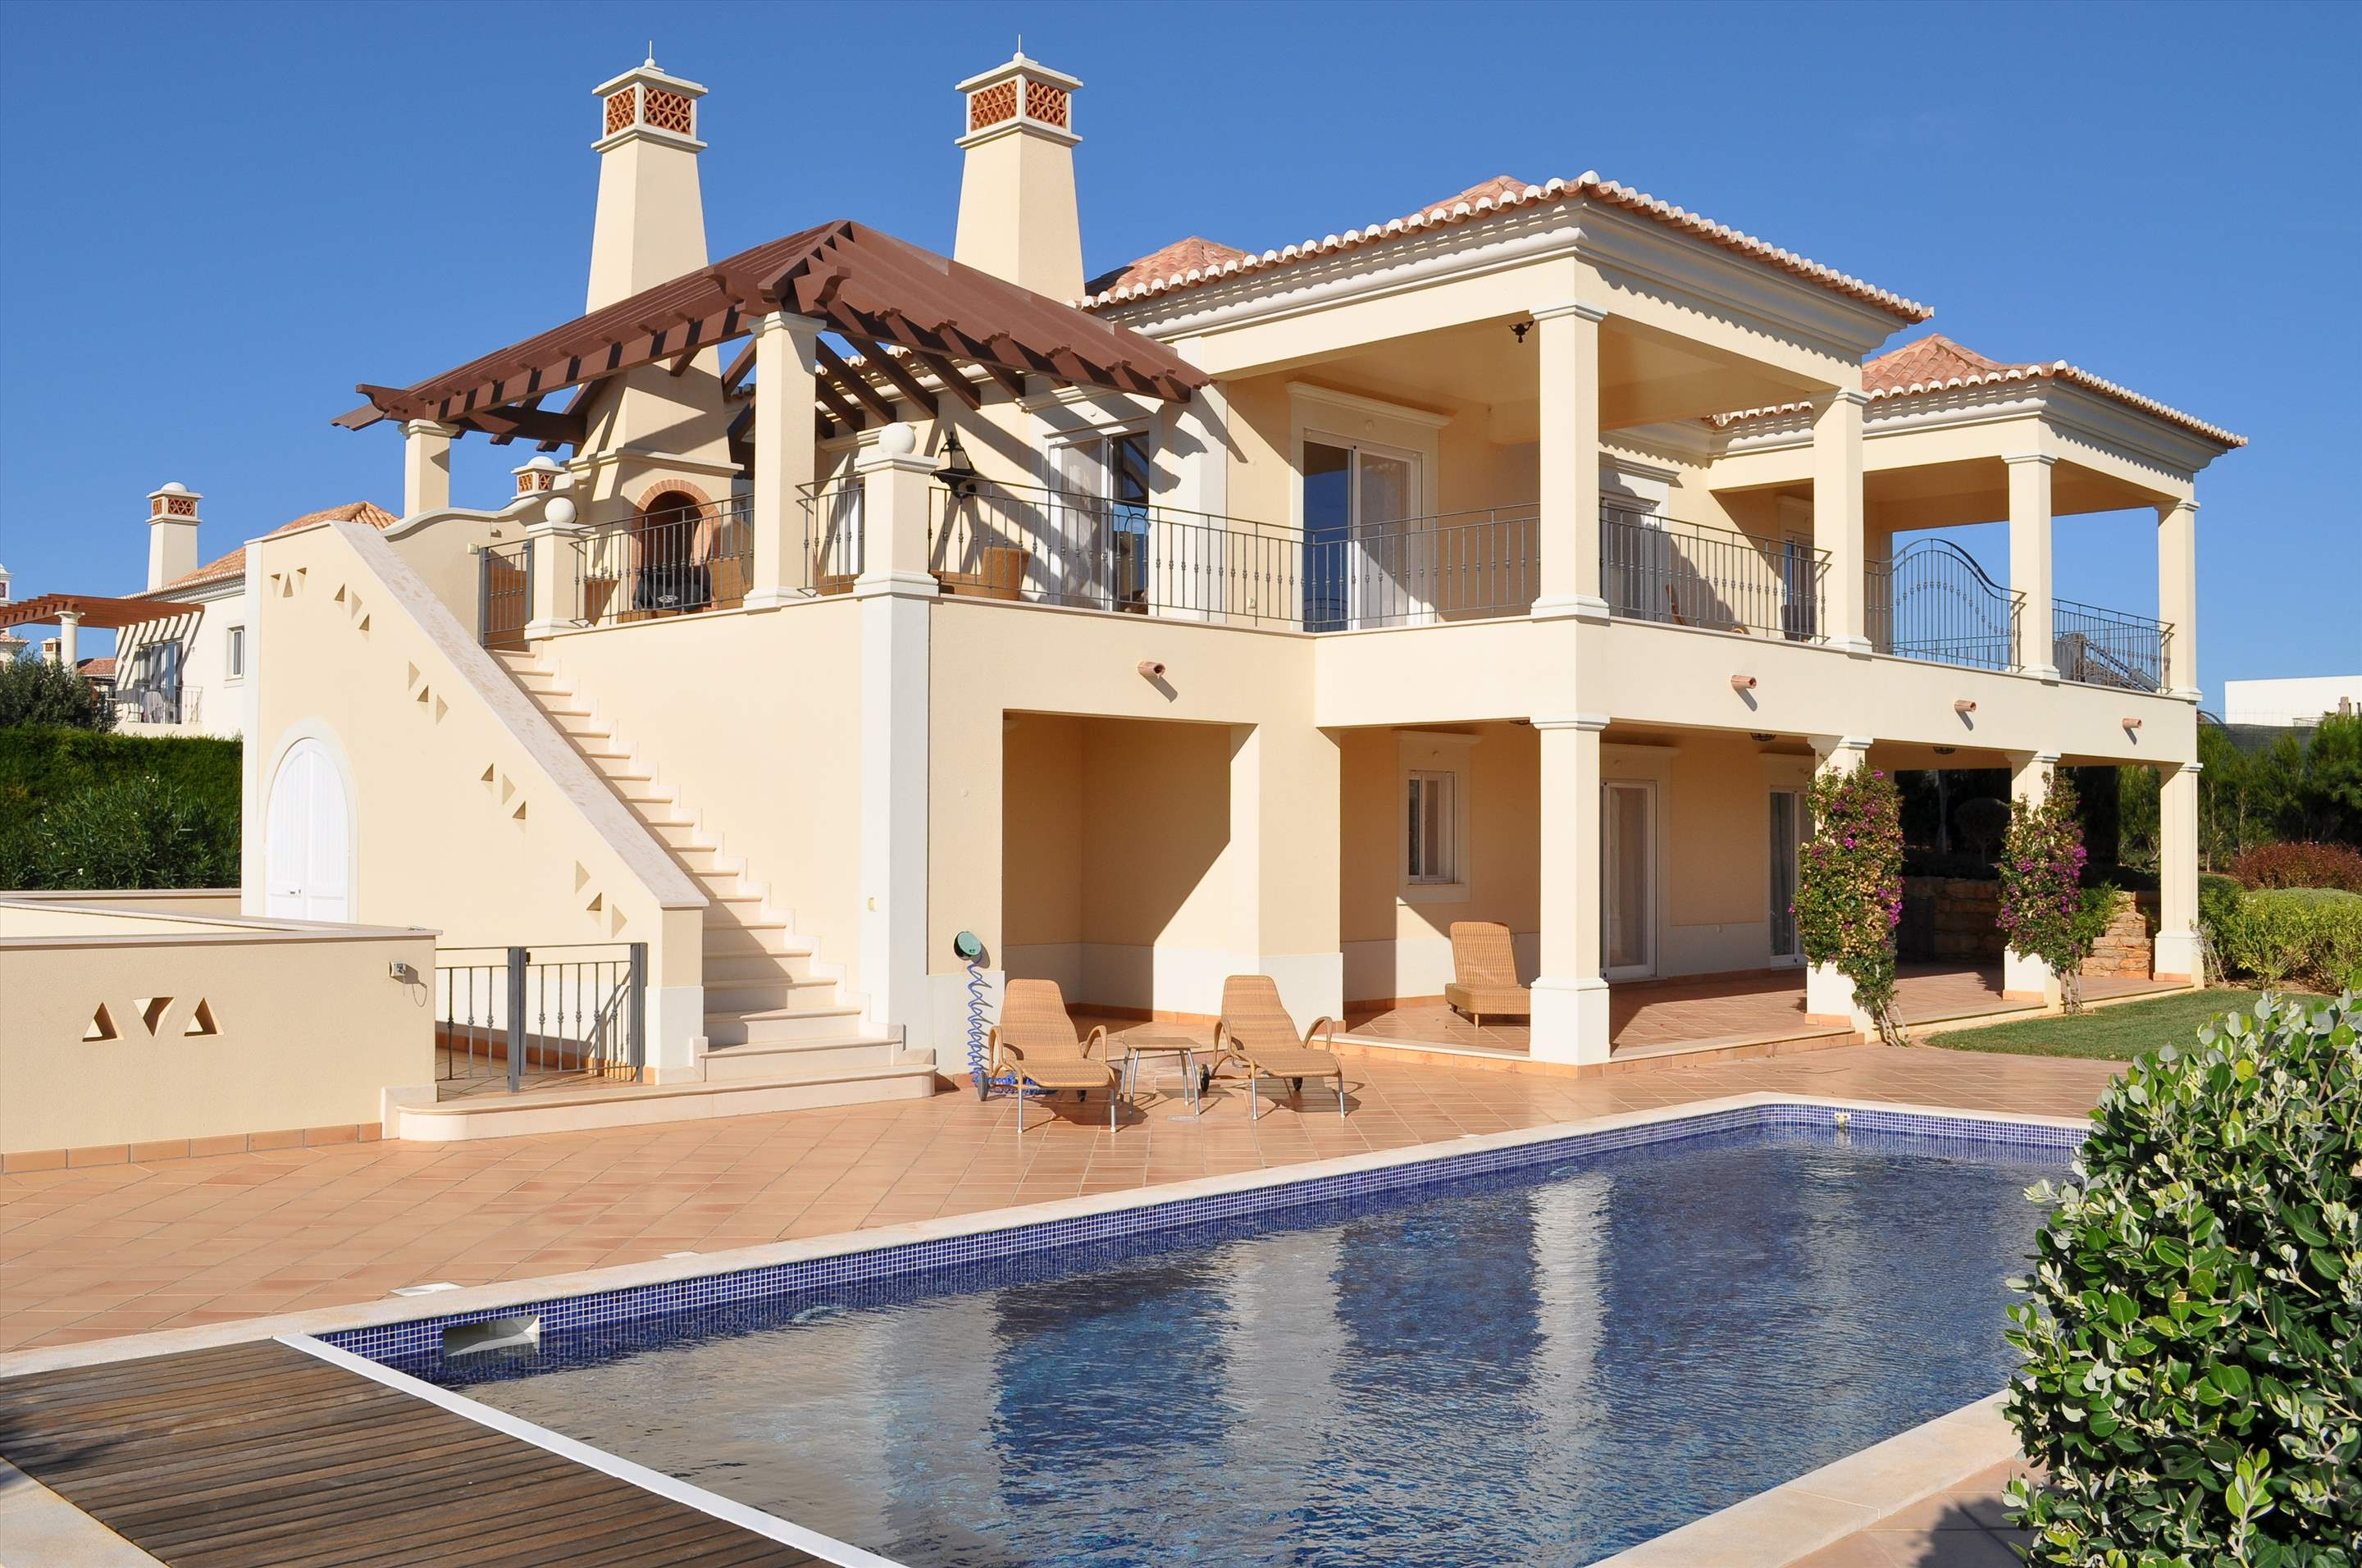 Martinhal Luxury Villa No.32, Three bedroom villa, 3 bedroom villa in Martinhal Sagres, Algarve Photo #1